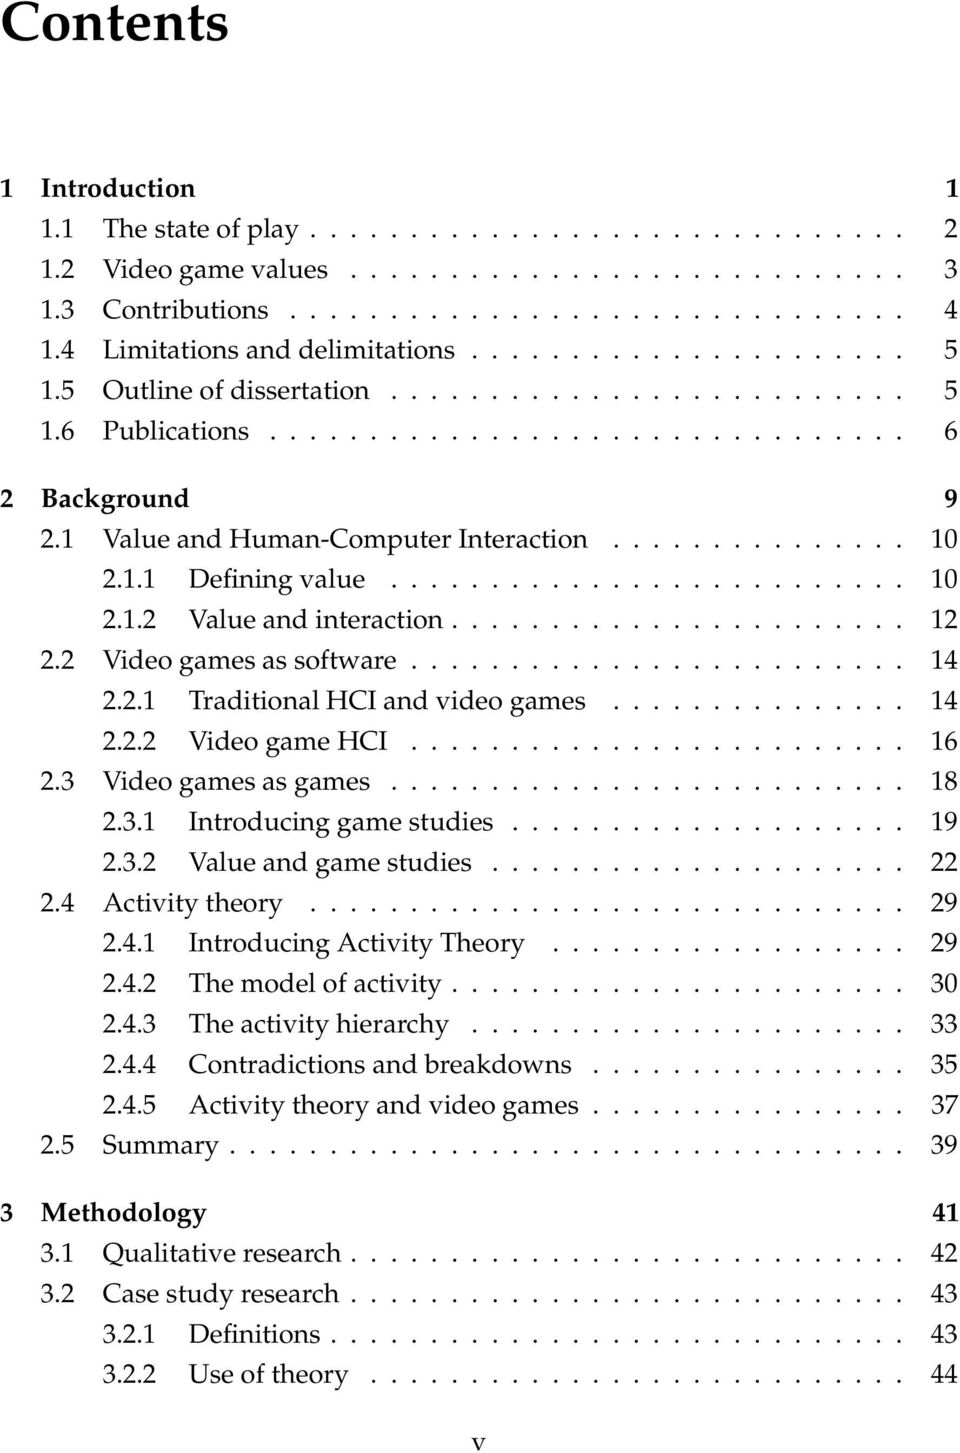 1 Value and Human-Computer Interaction............... 10 2.1.1 Defining value.......................... 10 2.1.2 Value and interaction....................... 12 2.2 Video games as software......................... 14 2.